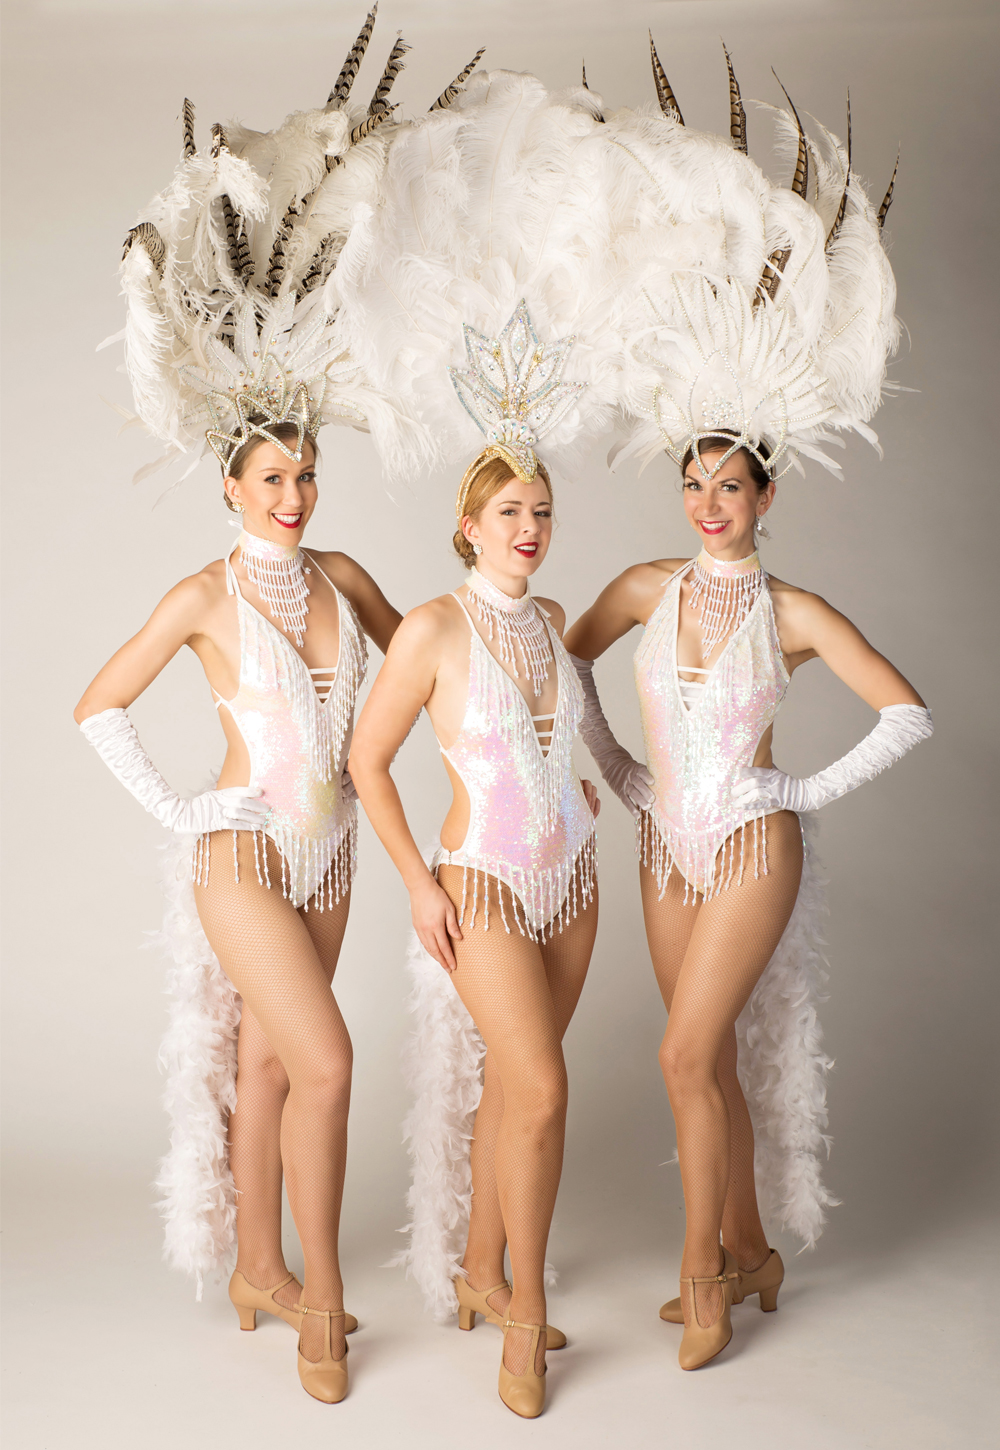 Vancouver Showgirls in White